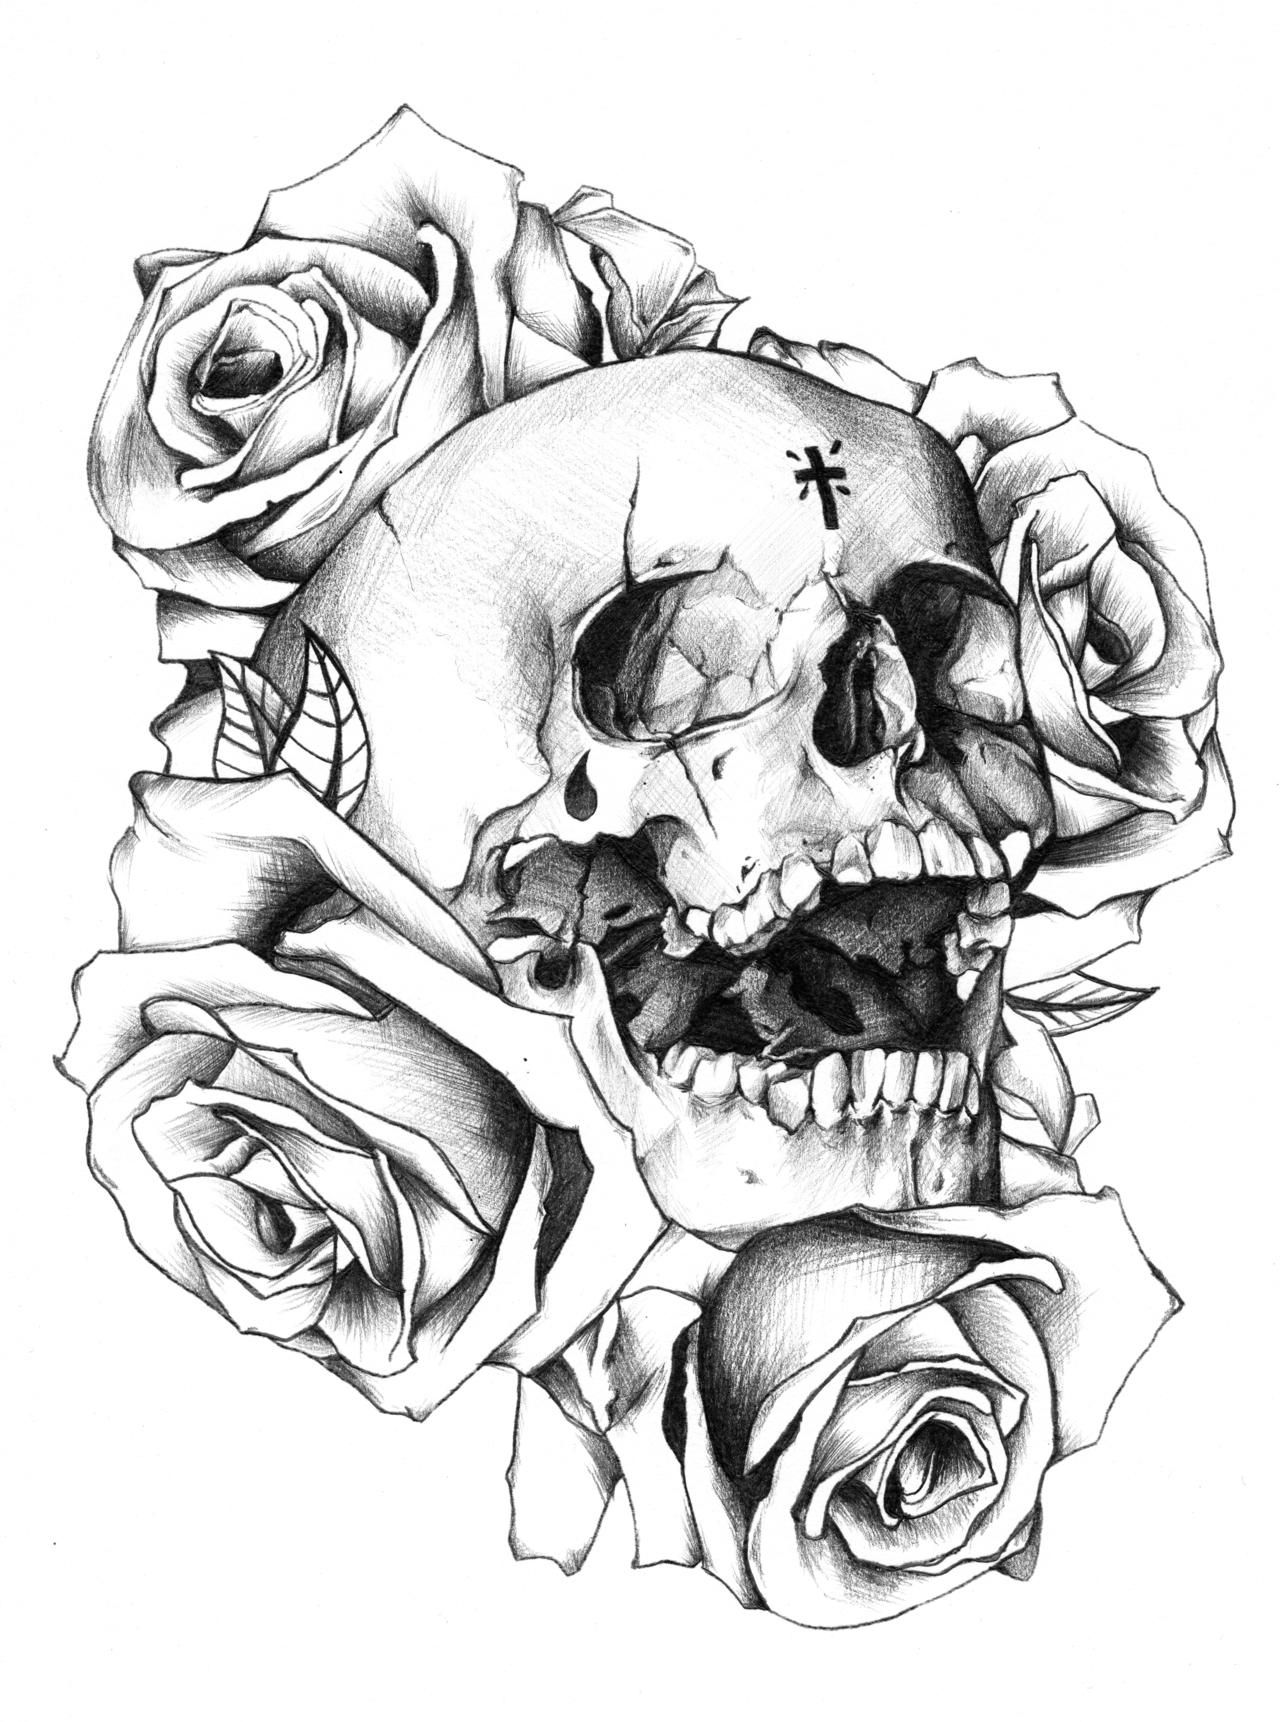 Skull And Roses Never Gets Dull